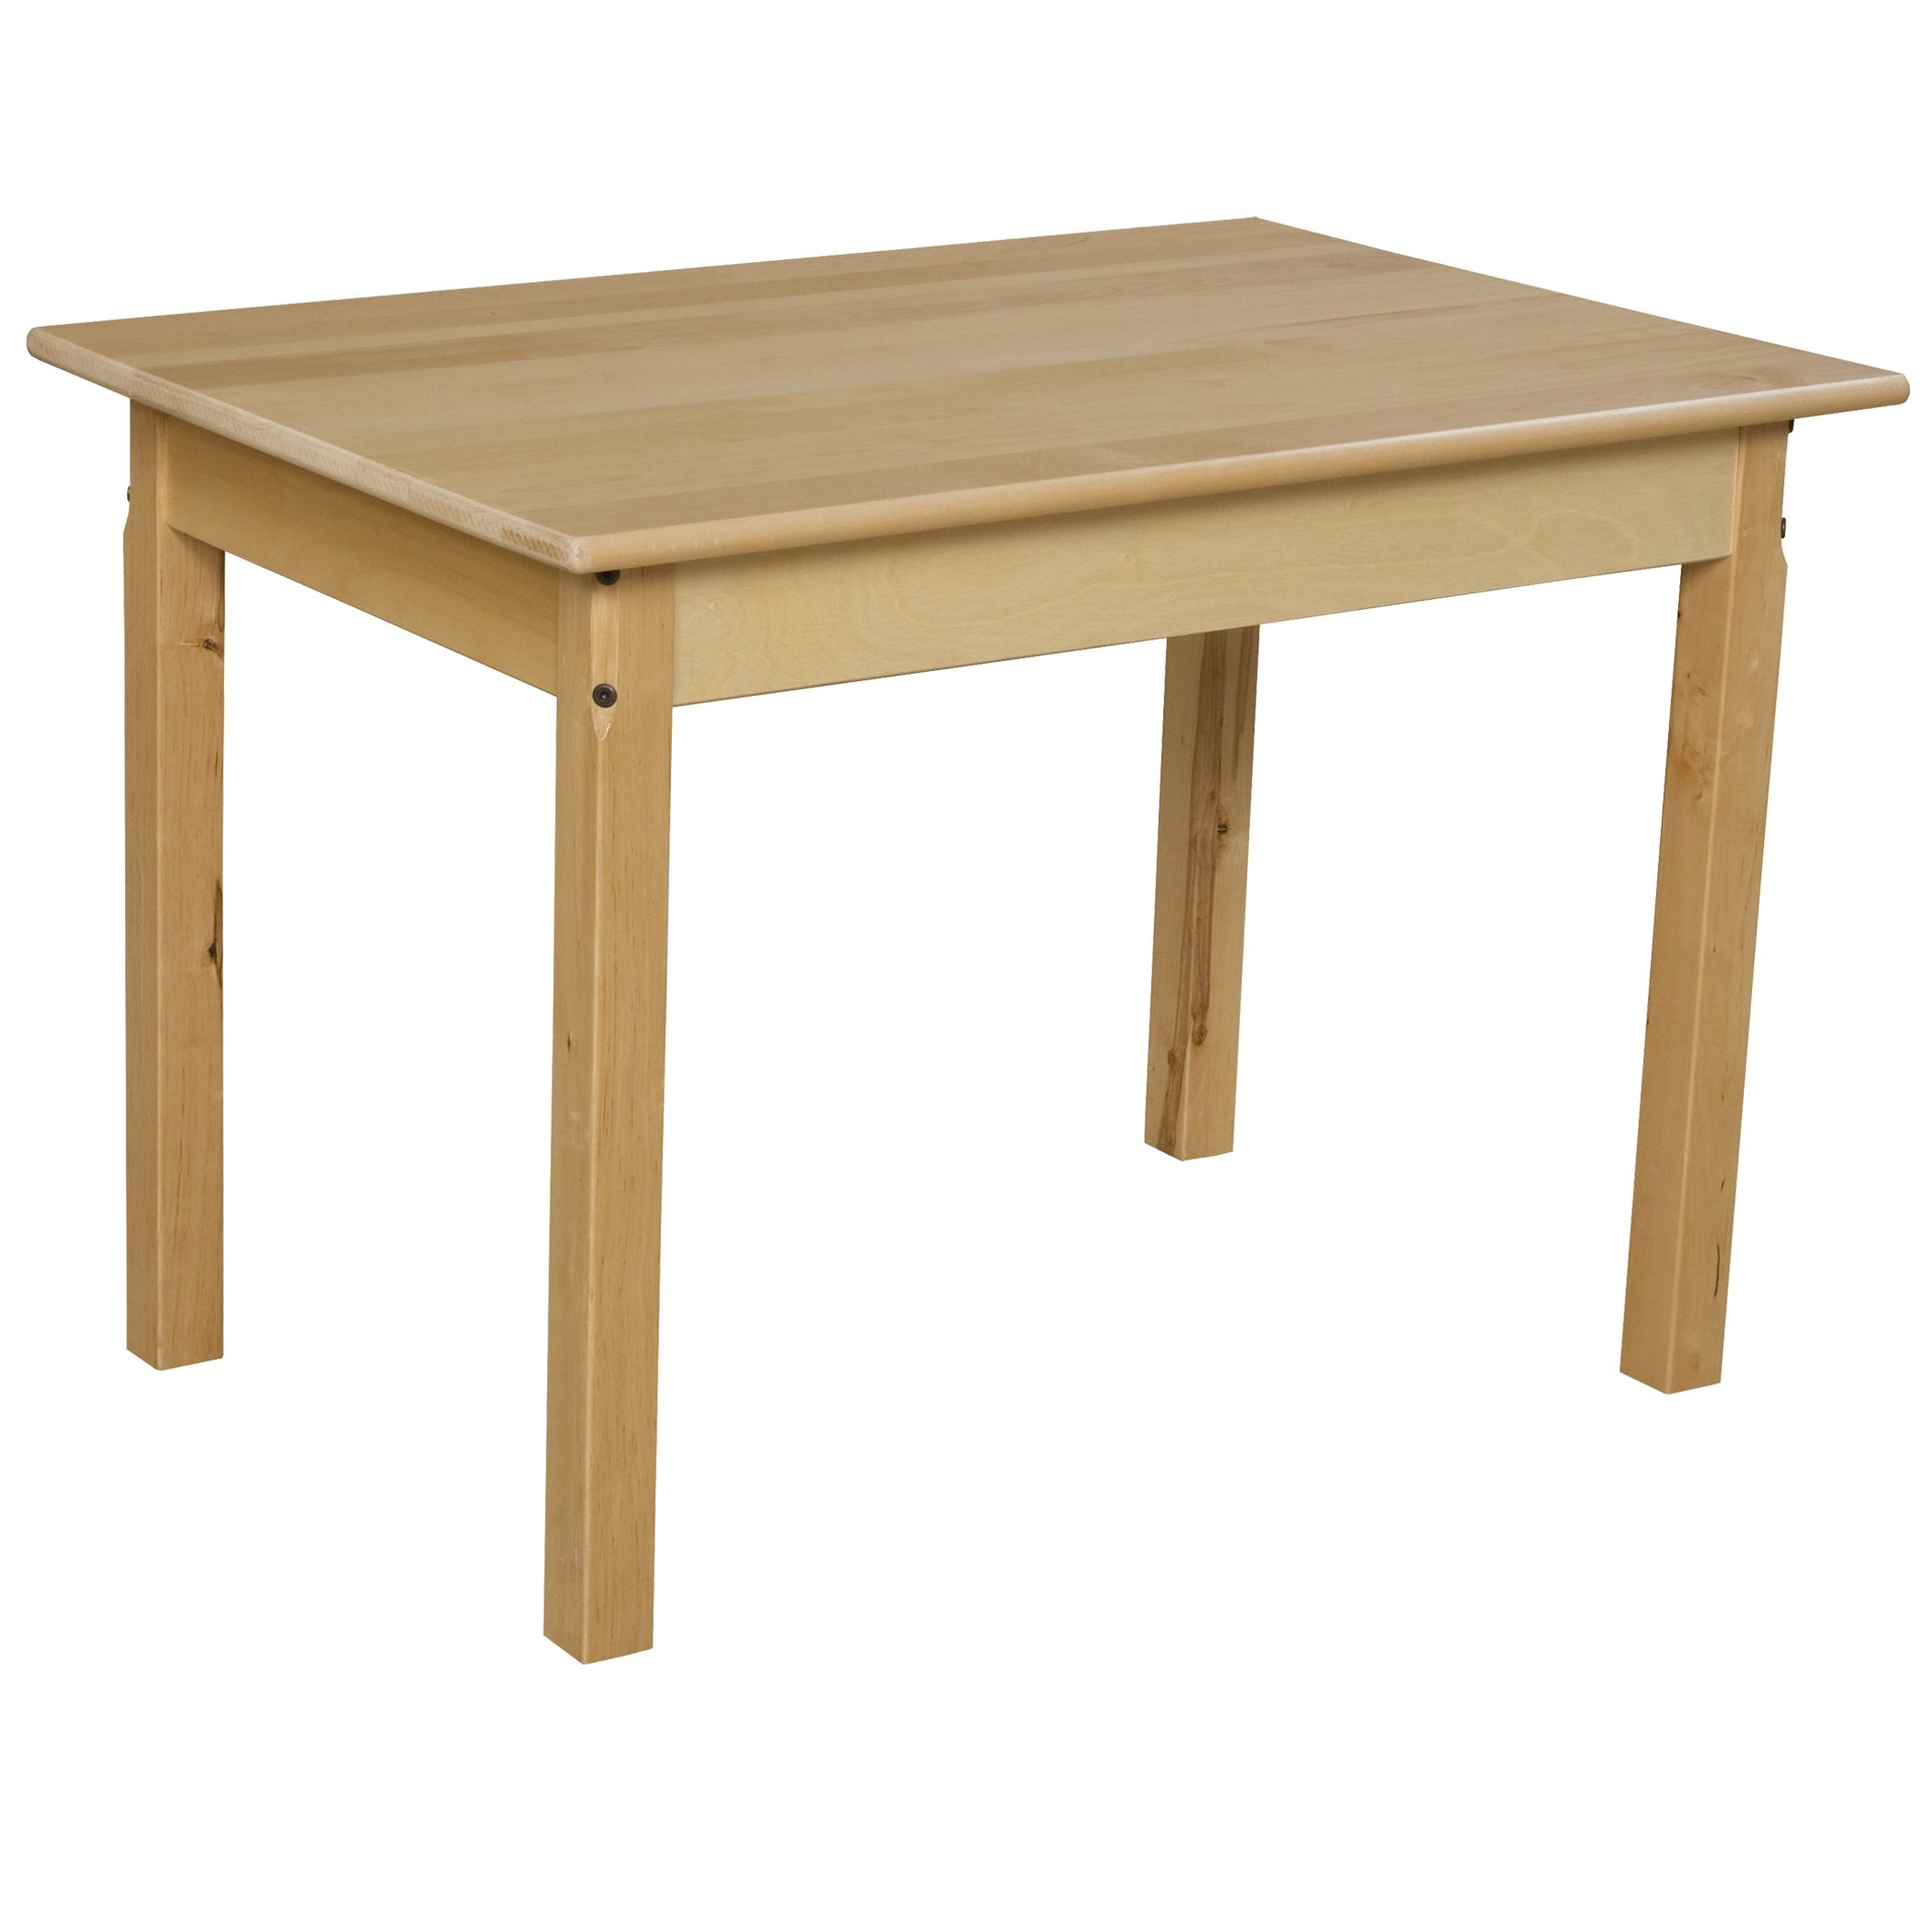 Wood Designs WD82322 Child's Table, 24'' x 36'' Rectangle with 22'' Legs